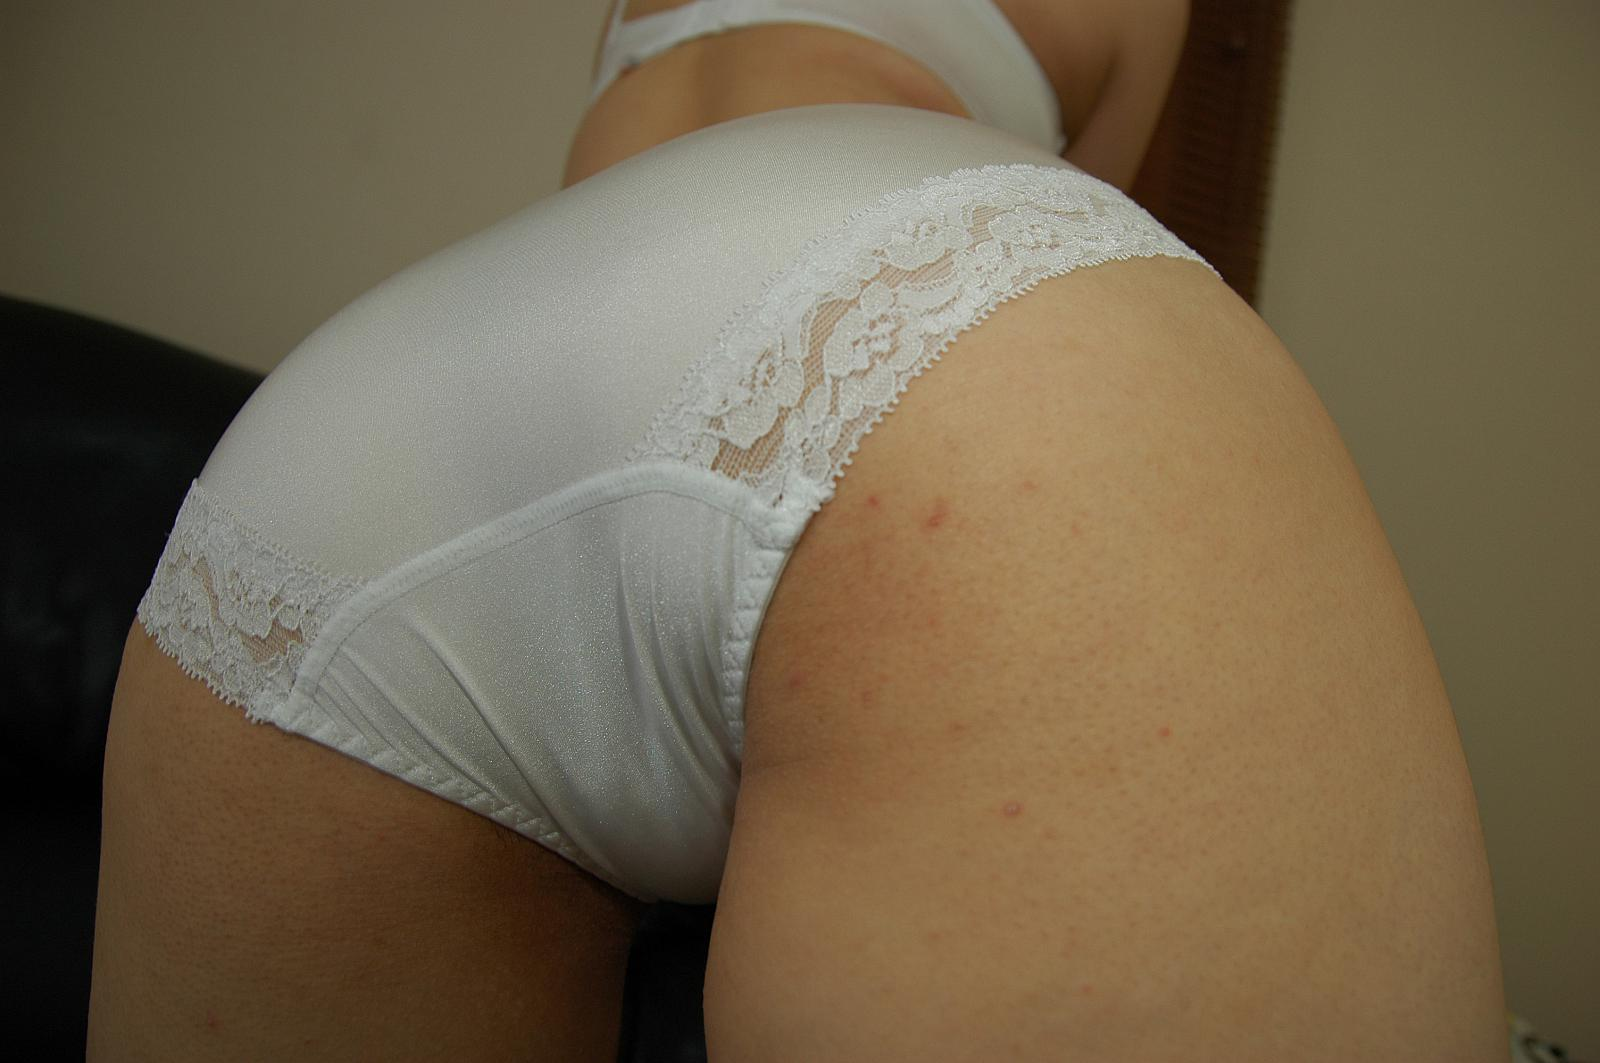 Panty upskirt pics and vids